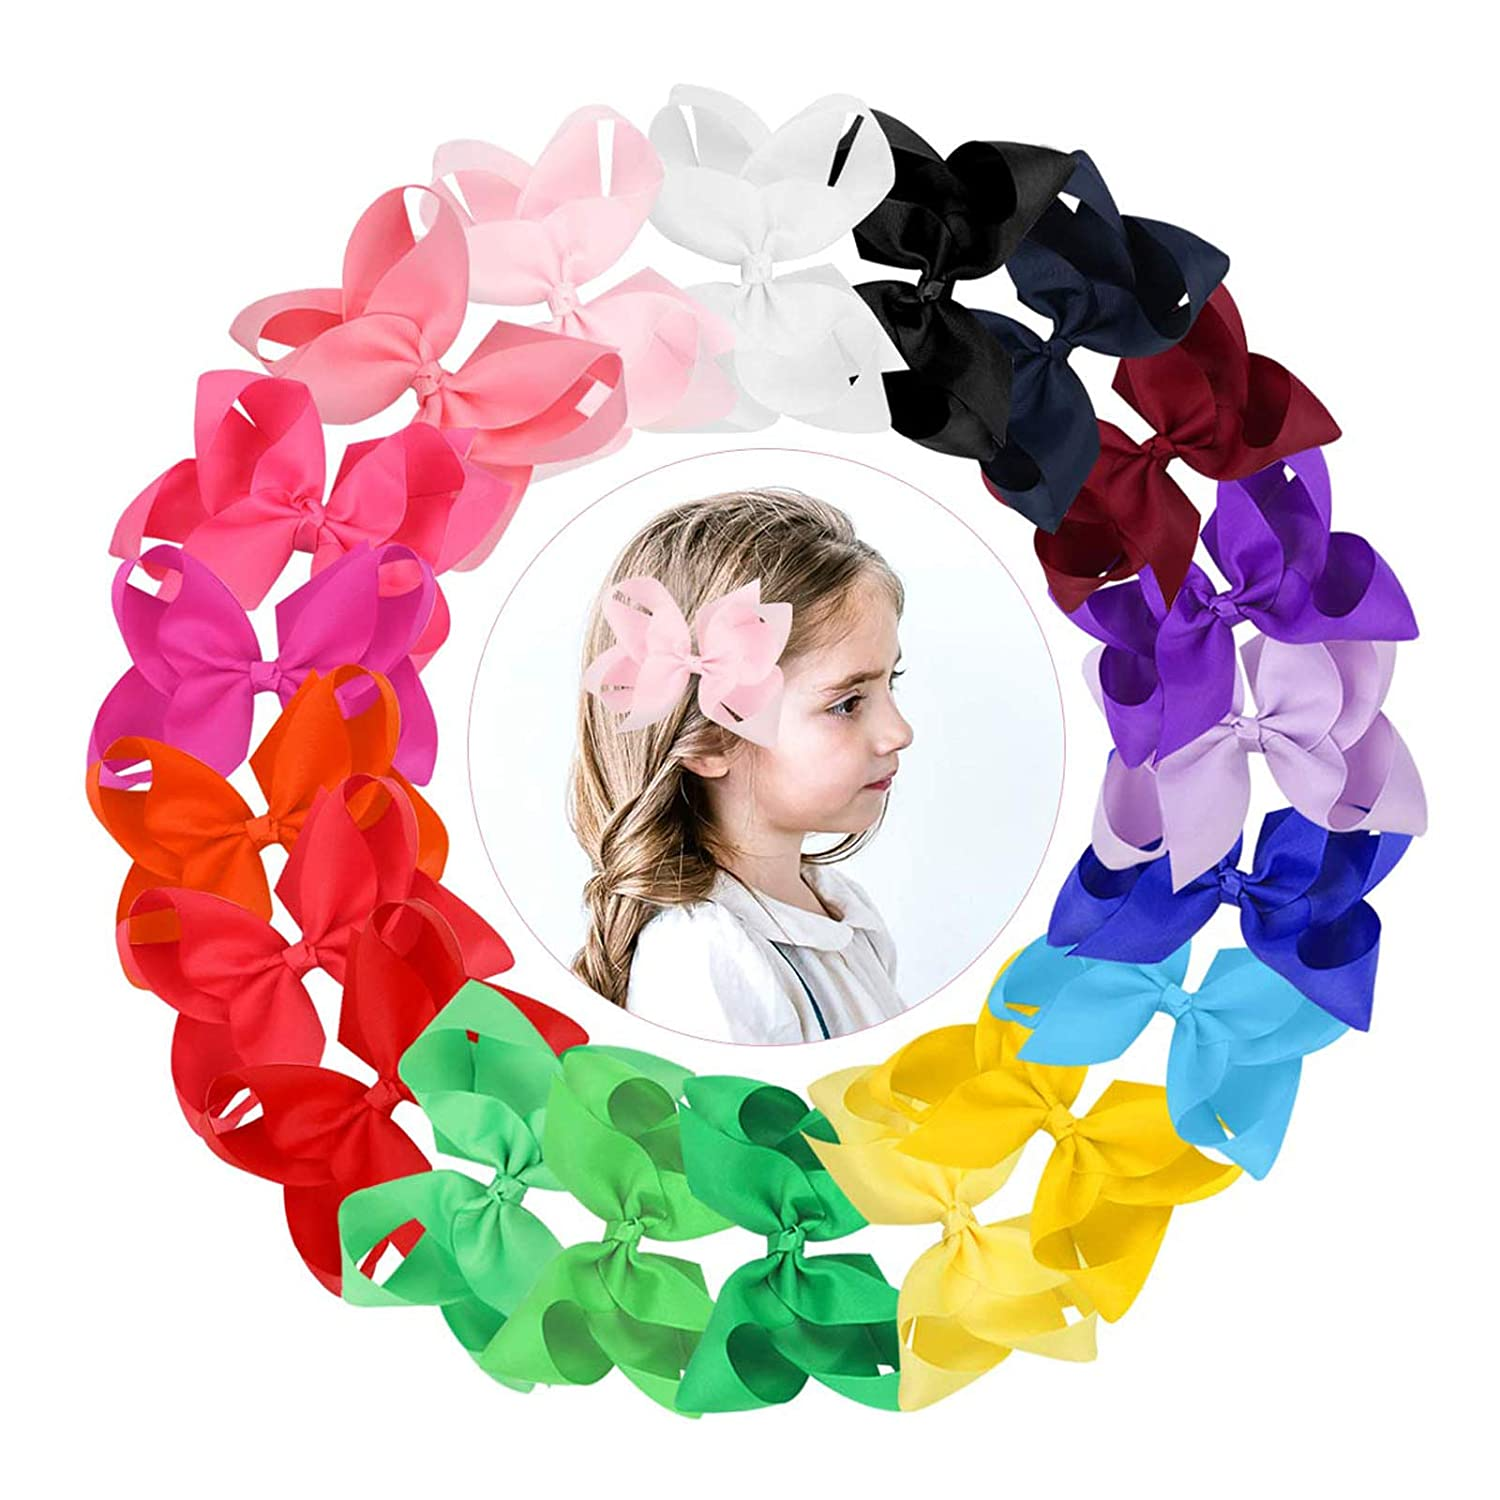 Classic Size Hairbow  Fall Hairbow  Baby Headband  Toddler Hairclips  Toddler Hairbow Solid Color Bows  Girls Hairbow  Fabric Bows